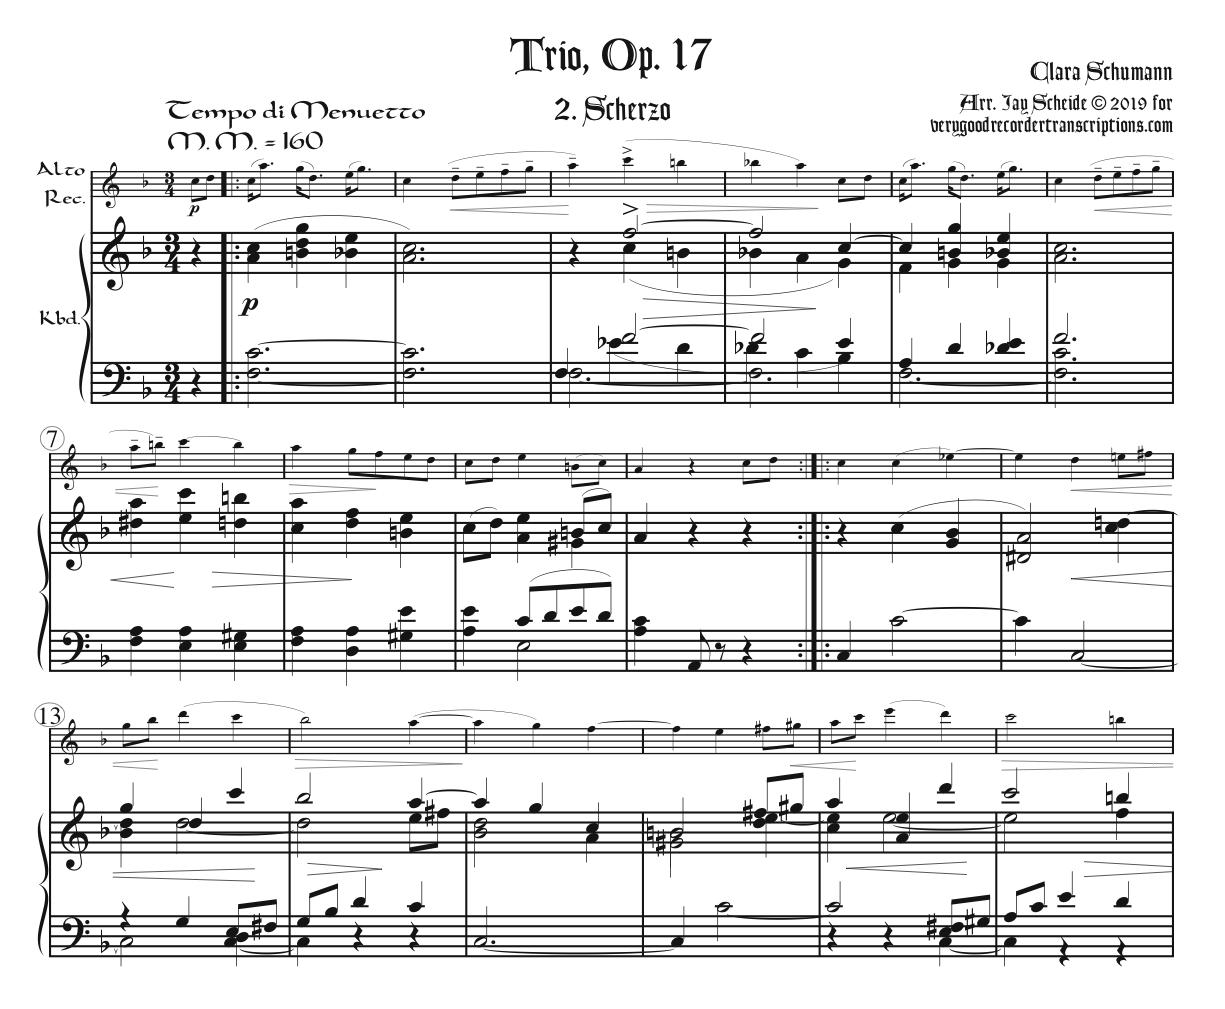 Two Movements from Trio, Op. 17, arr. for alto in F in one and alto in G doubling tenor in C in the other, and keyboard